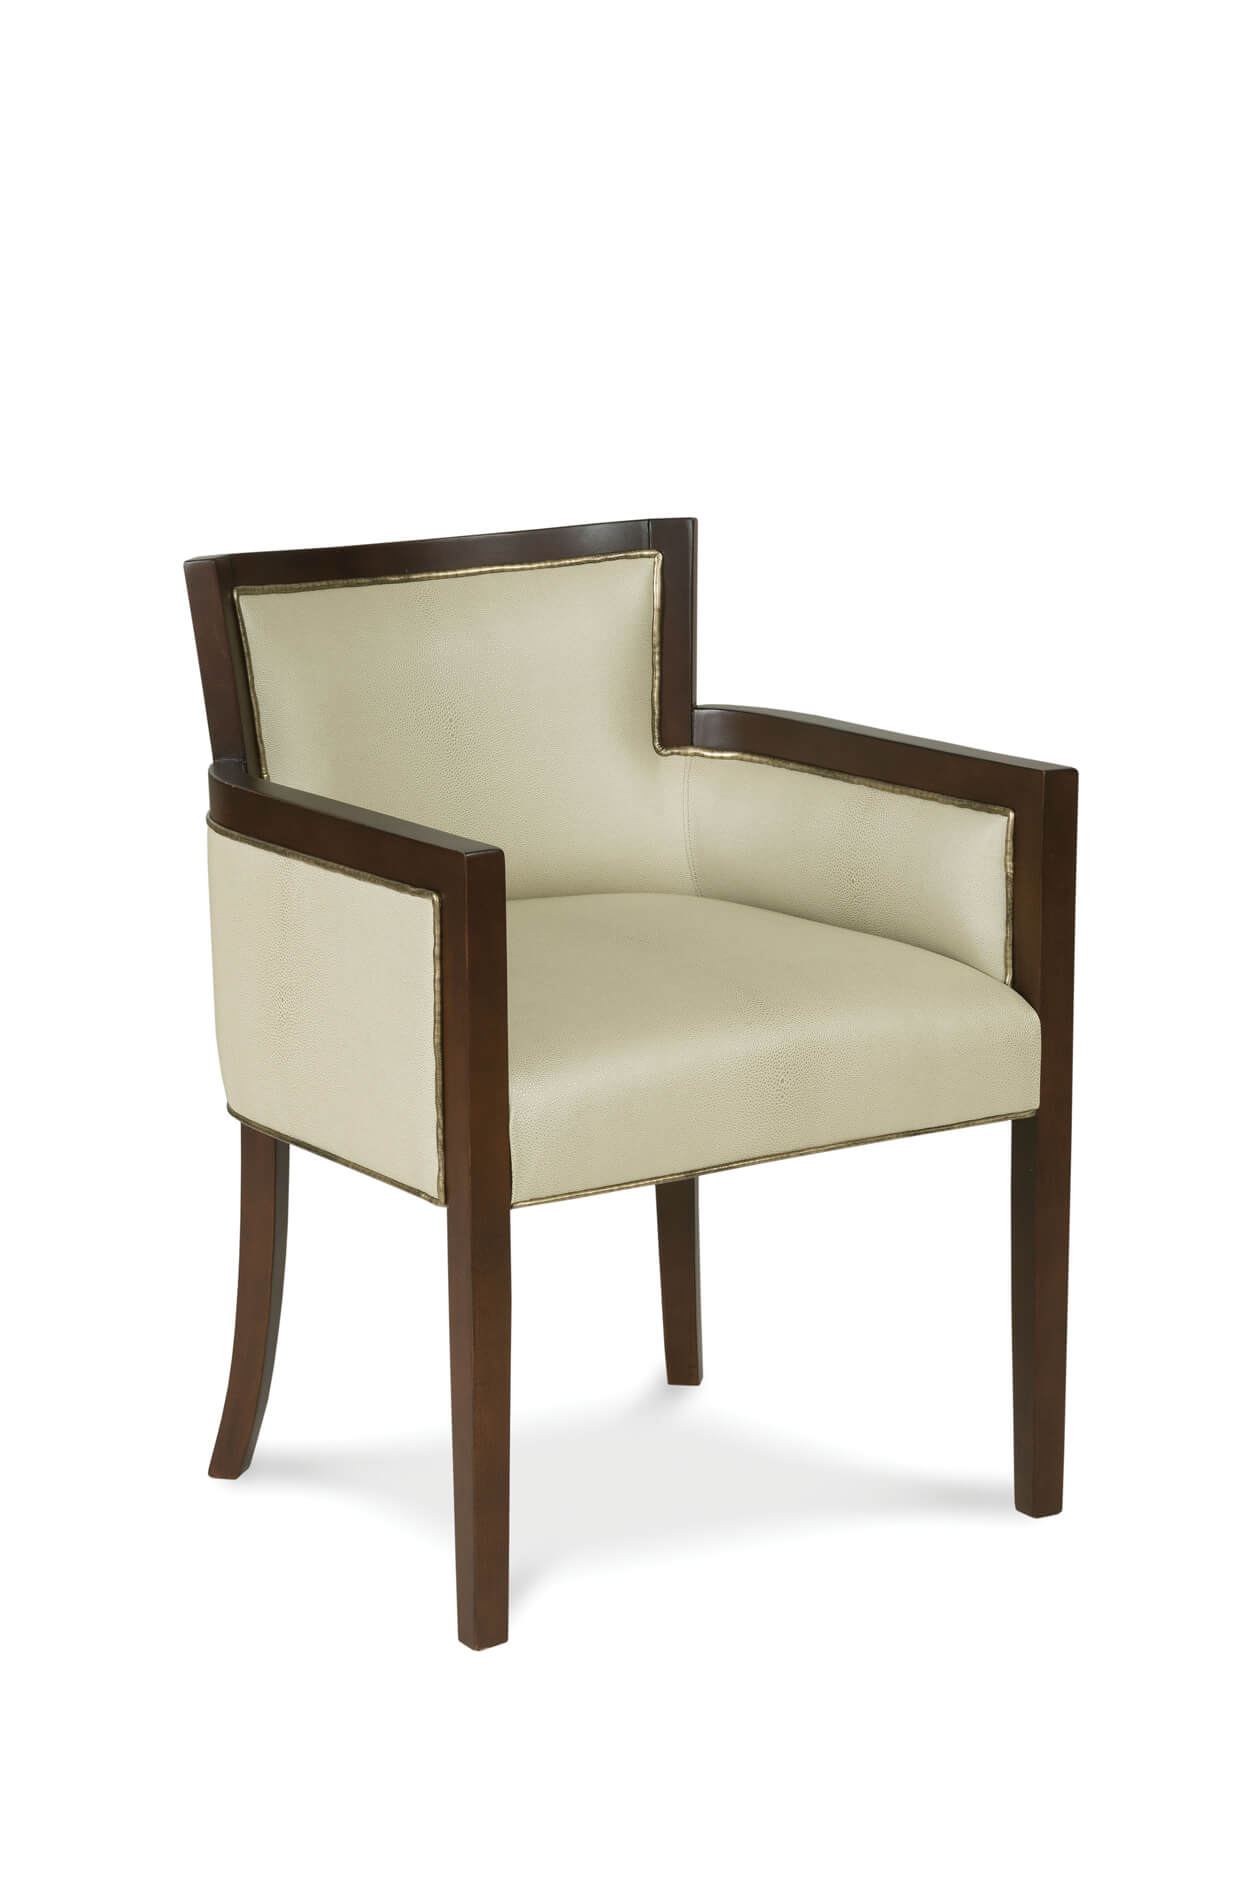 Fairfield's Albany Upholstered Dining Arm Chair